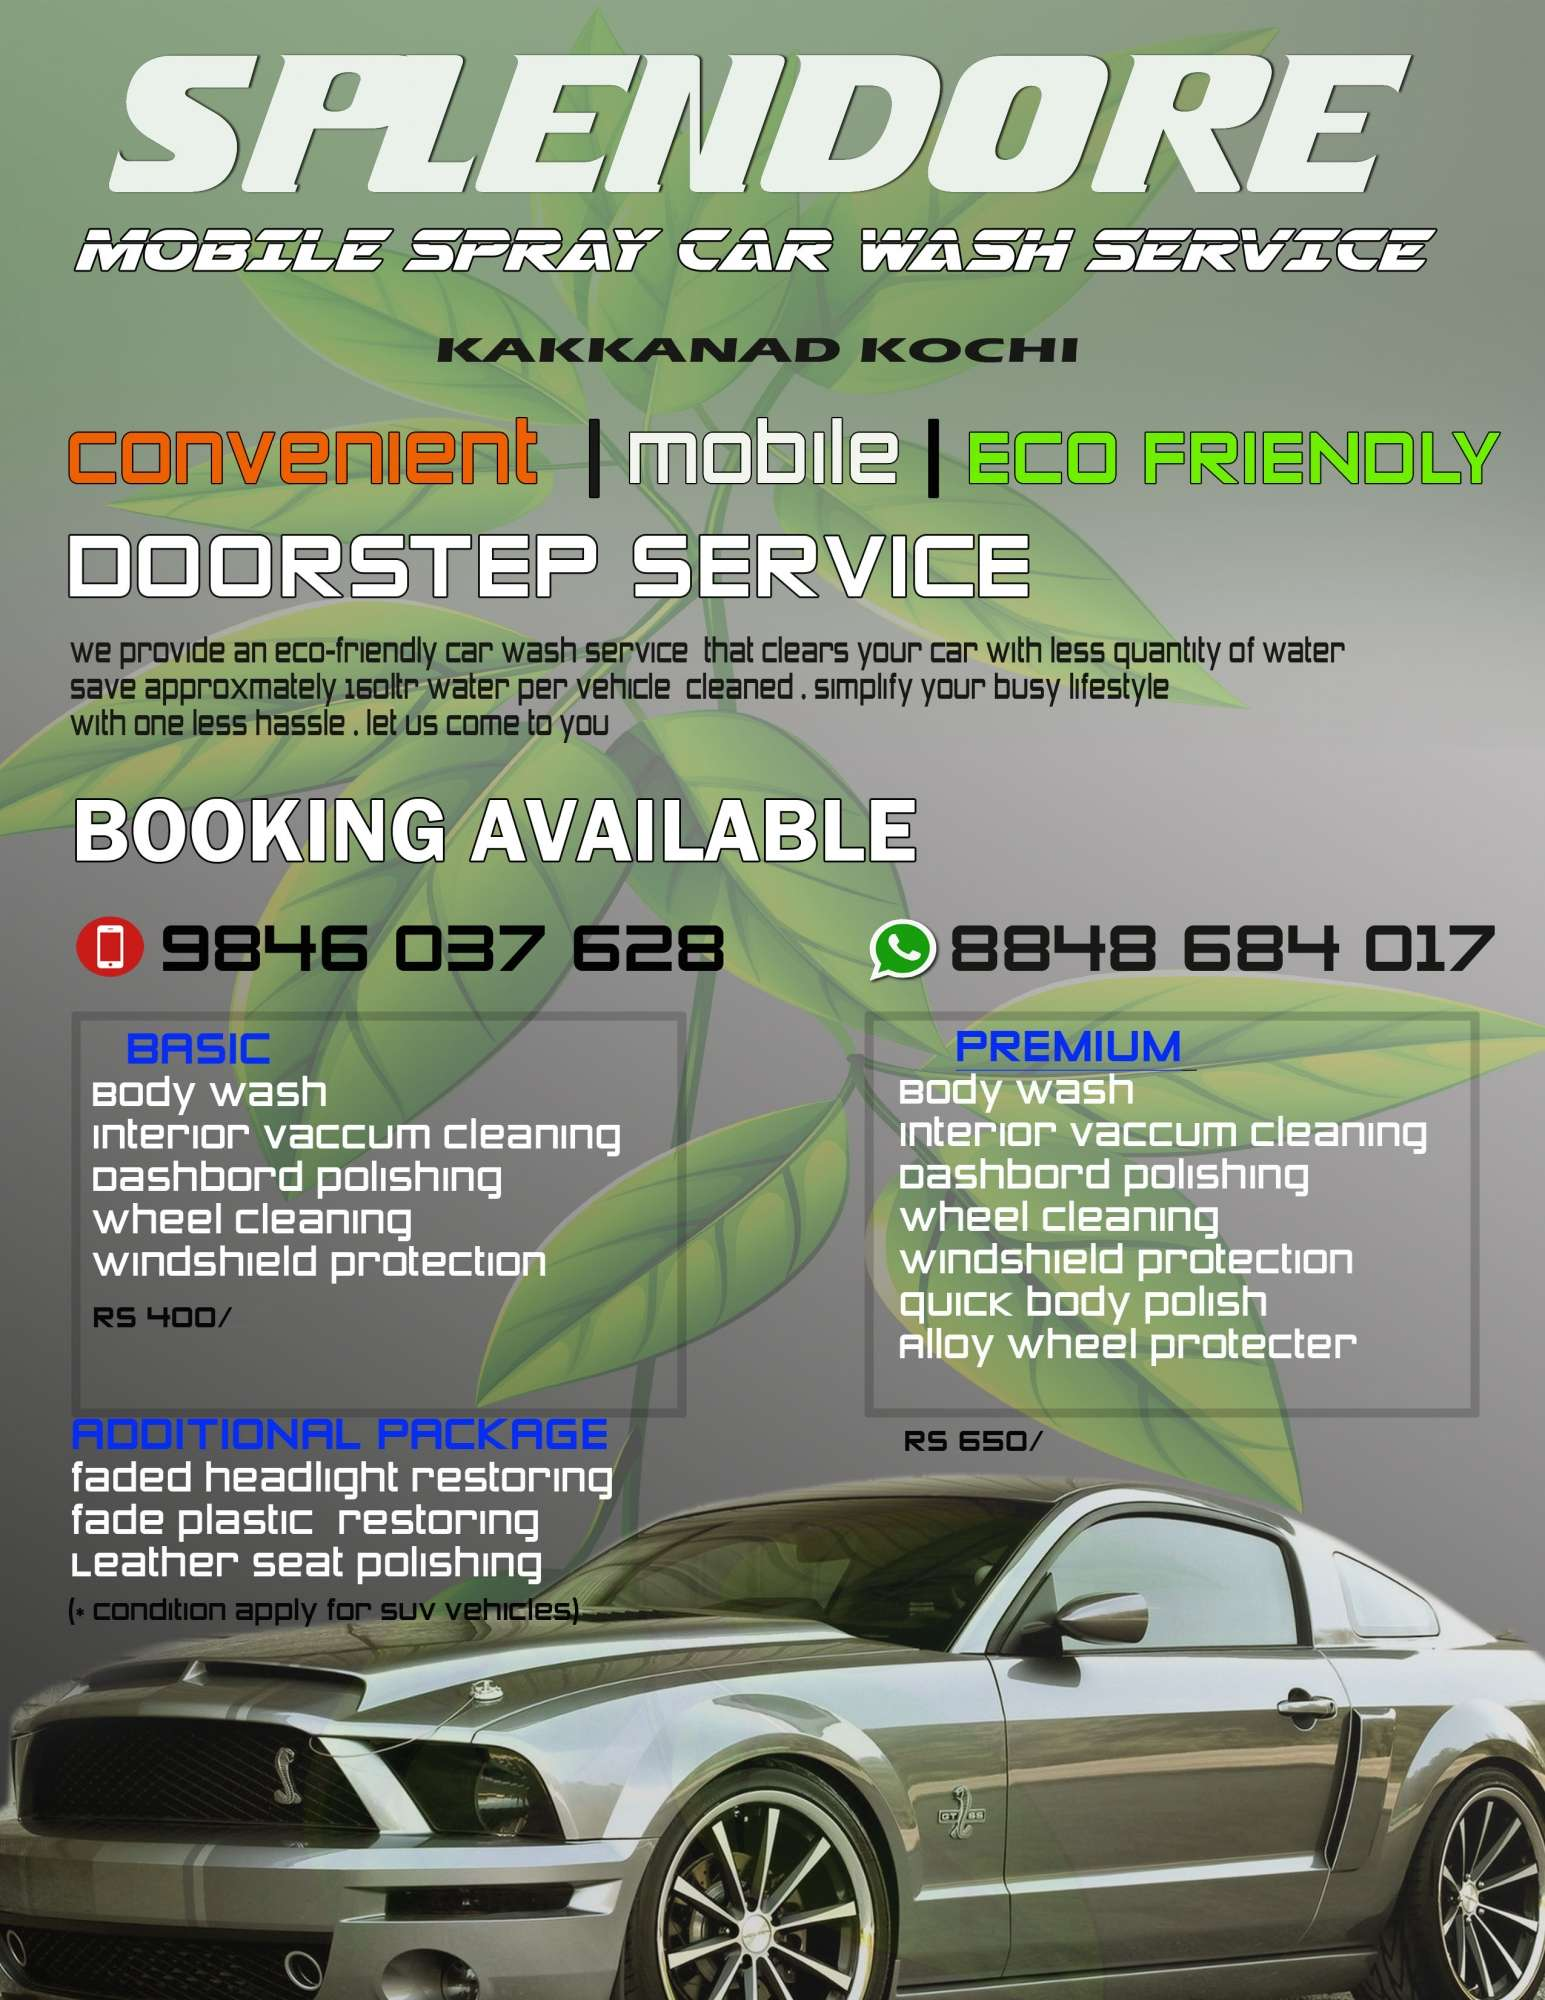 Top 30 Mobile Car Washing Services in Vadacode - Best Mobile ... Mobile Home Washing Service on mobile home inspections, mobile home styling, mobile home work, mobile home driving, mobile home color, mobile home machine, mobile home parking, mobile home care, mobile home board, mobile home folding, mobile home garden, mobile home house, mobile home school, mobile home repair, mobile home light, mobile home storage, mobile home gardening, mobile home heating, mobile home car, mobile home painting,